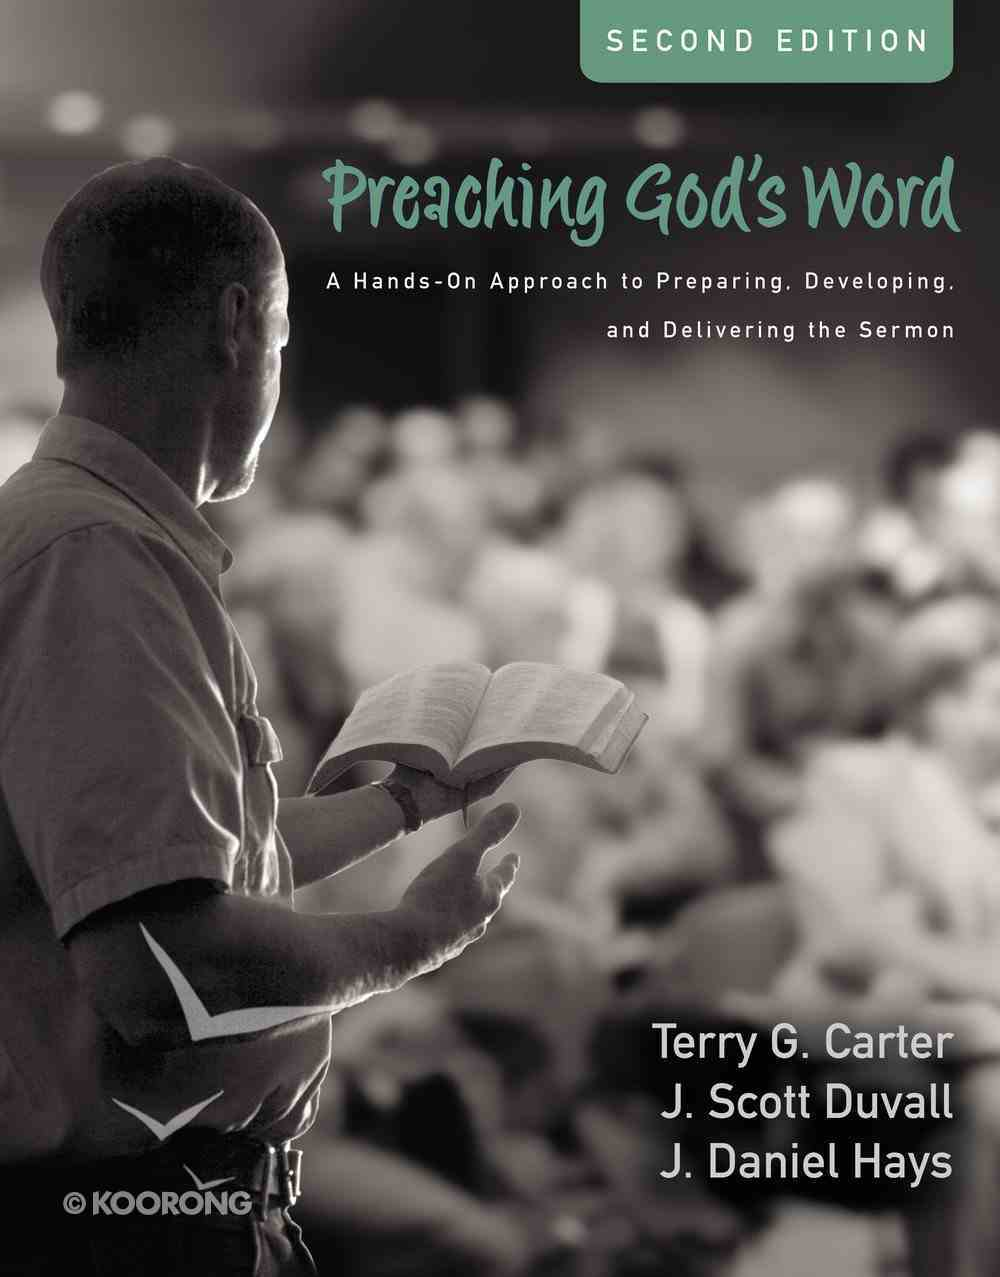 Preaching God's Word, Second Edition eBook